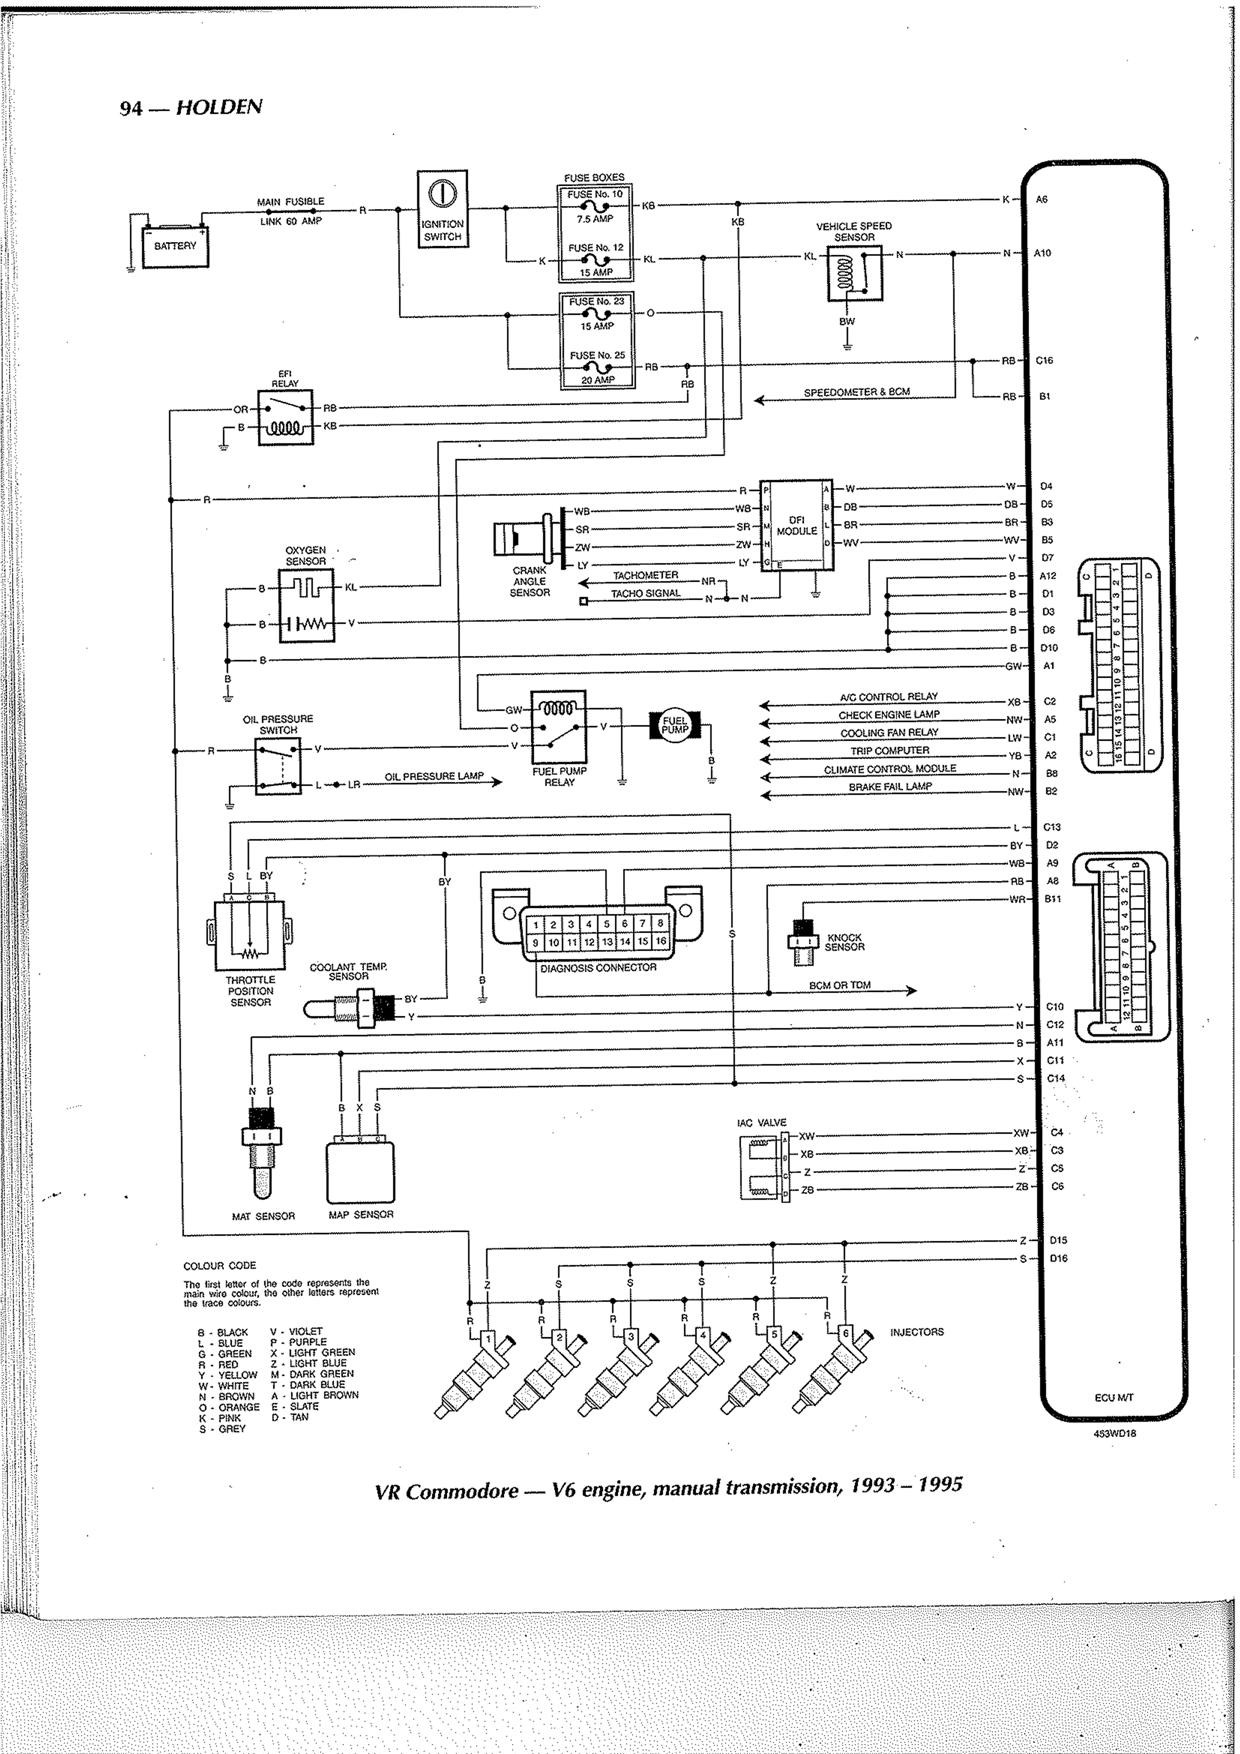 vx commodore wiring diagram wiring diagram fuse box u2022 rh friendsoffido co